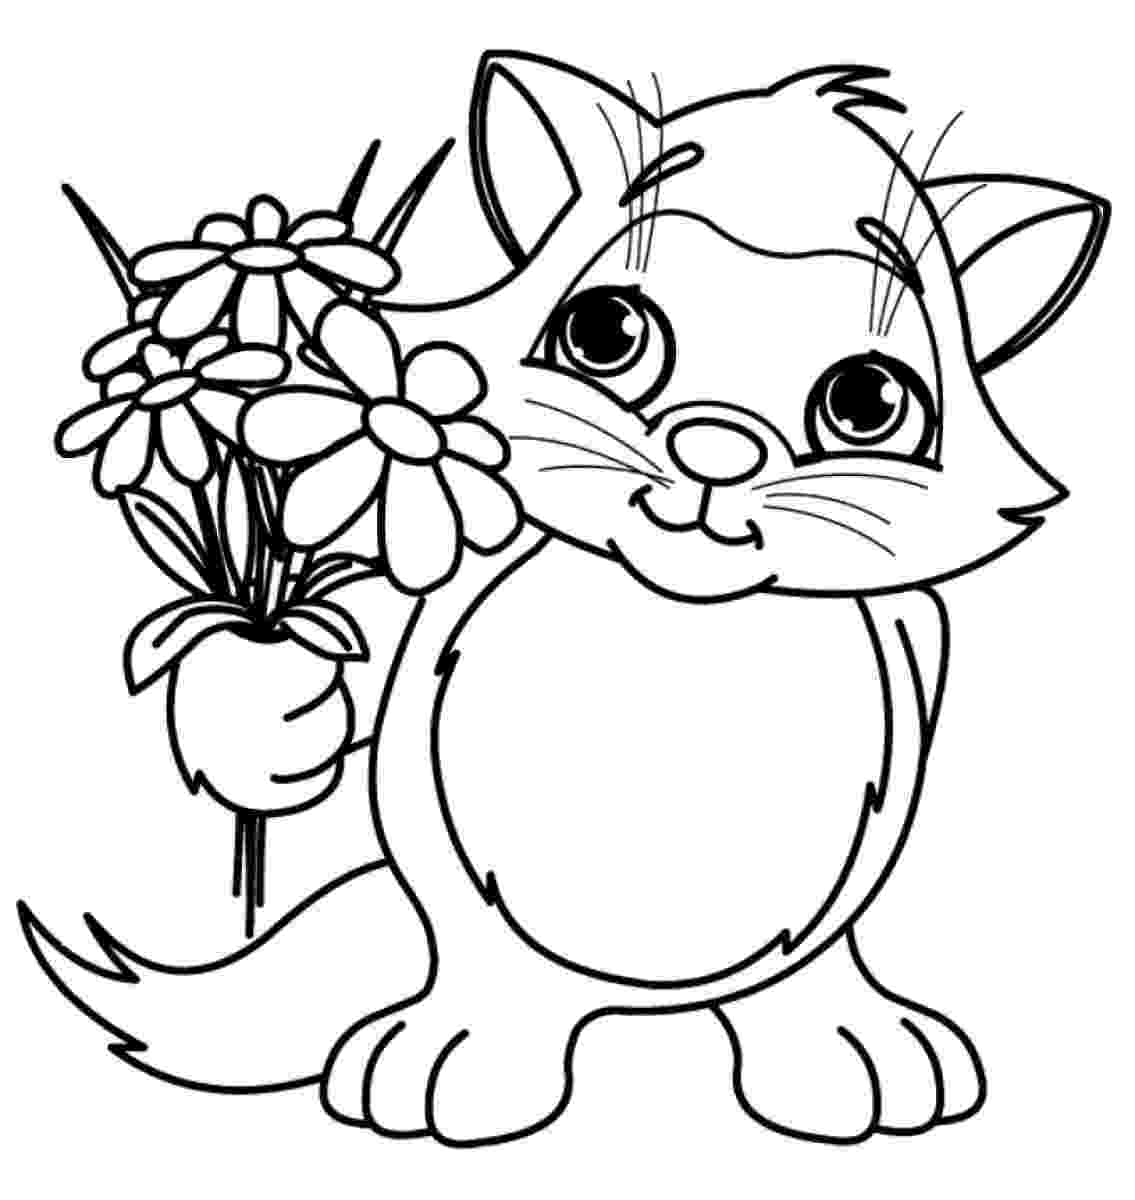 picture of flower for colouring spring flower coloring pages to download and print for free of colouring for flower picture